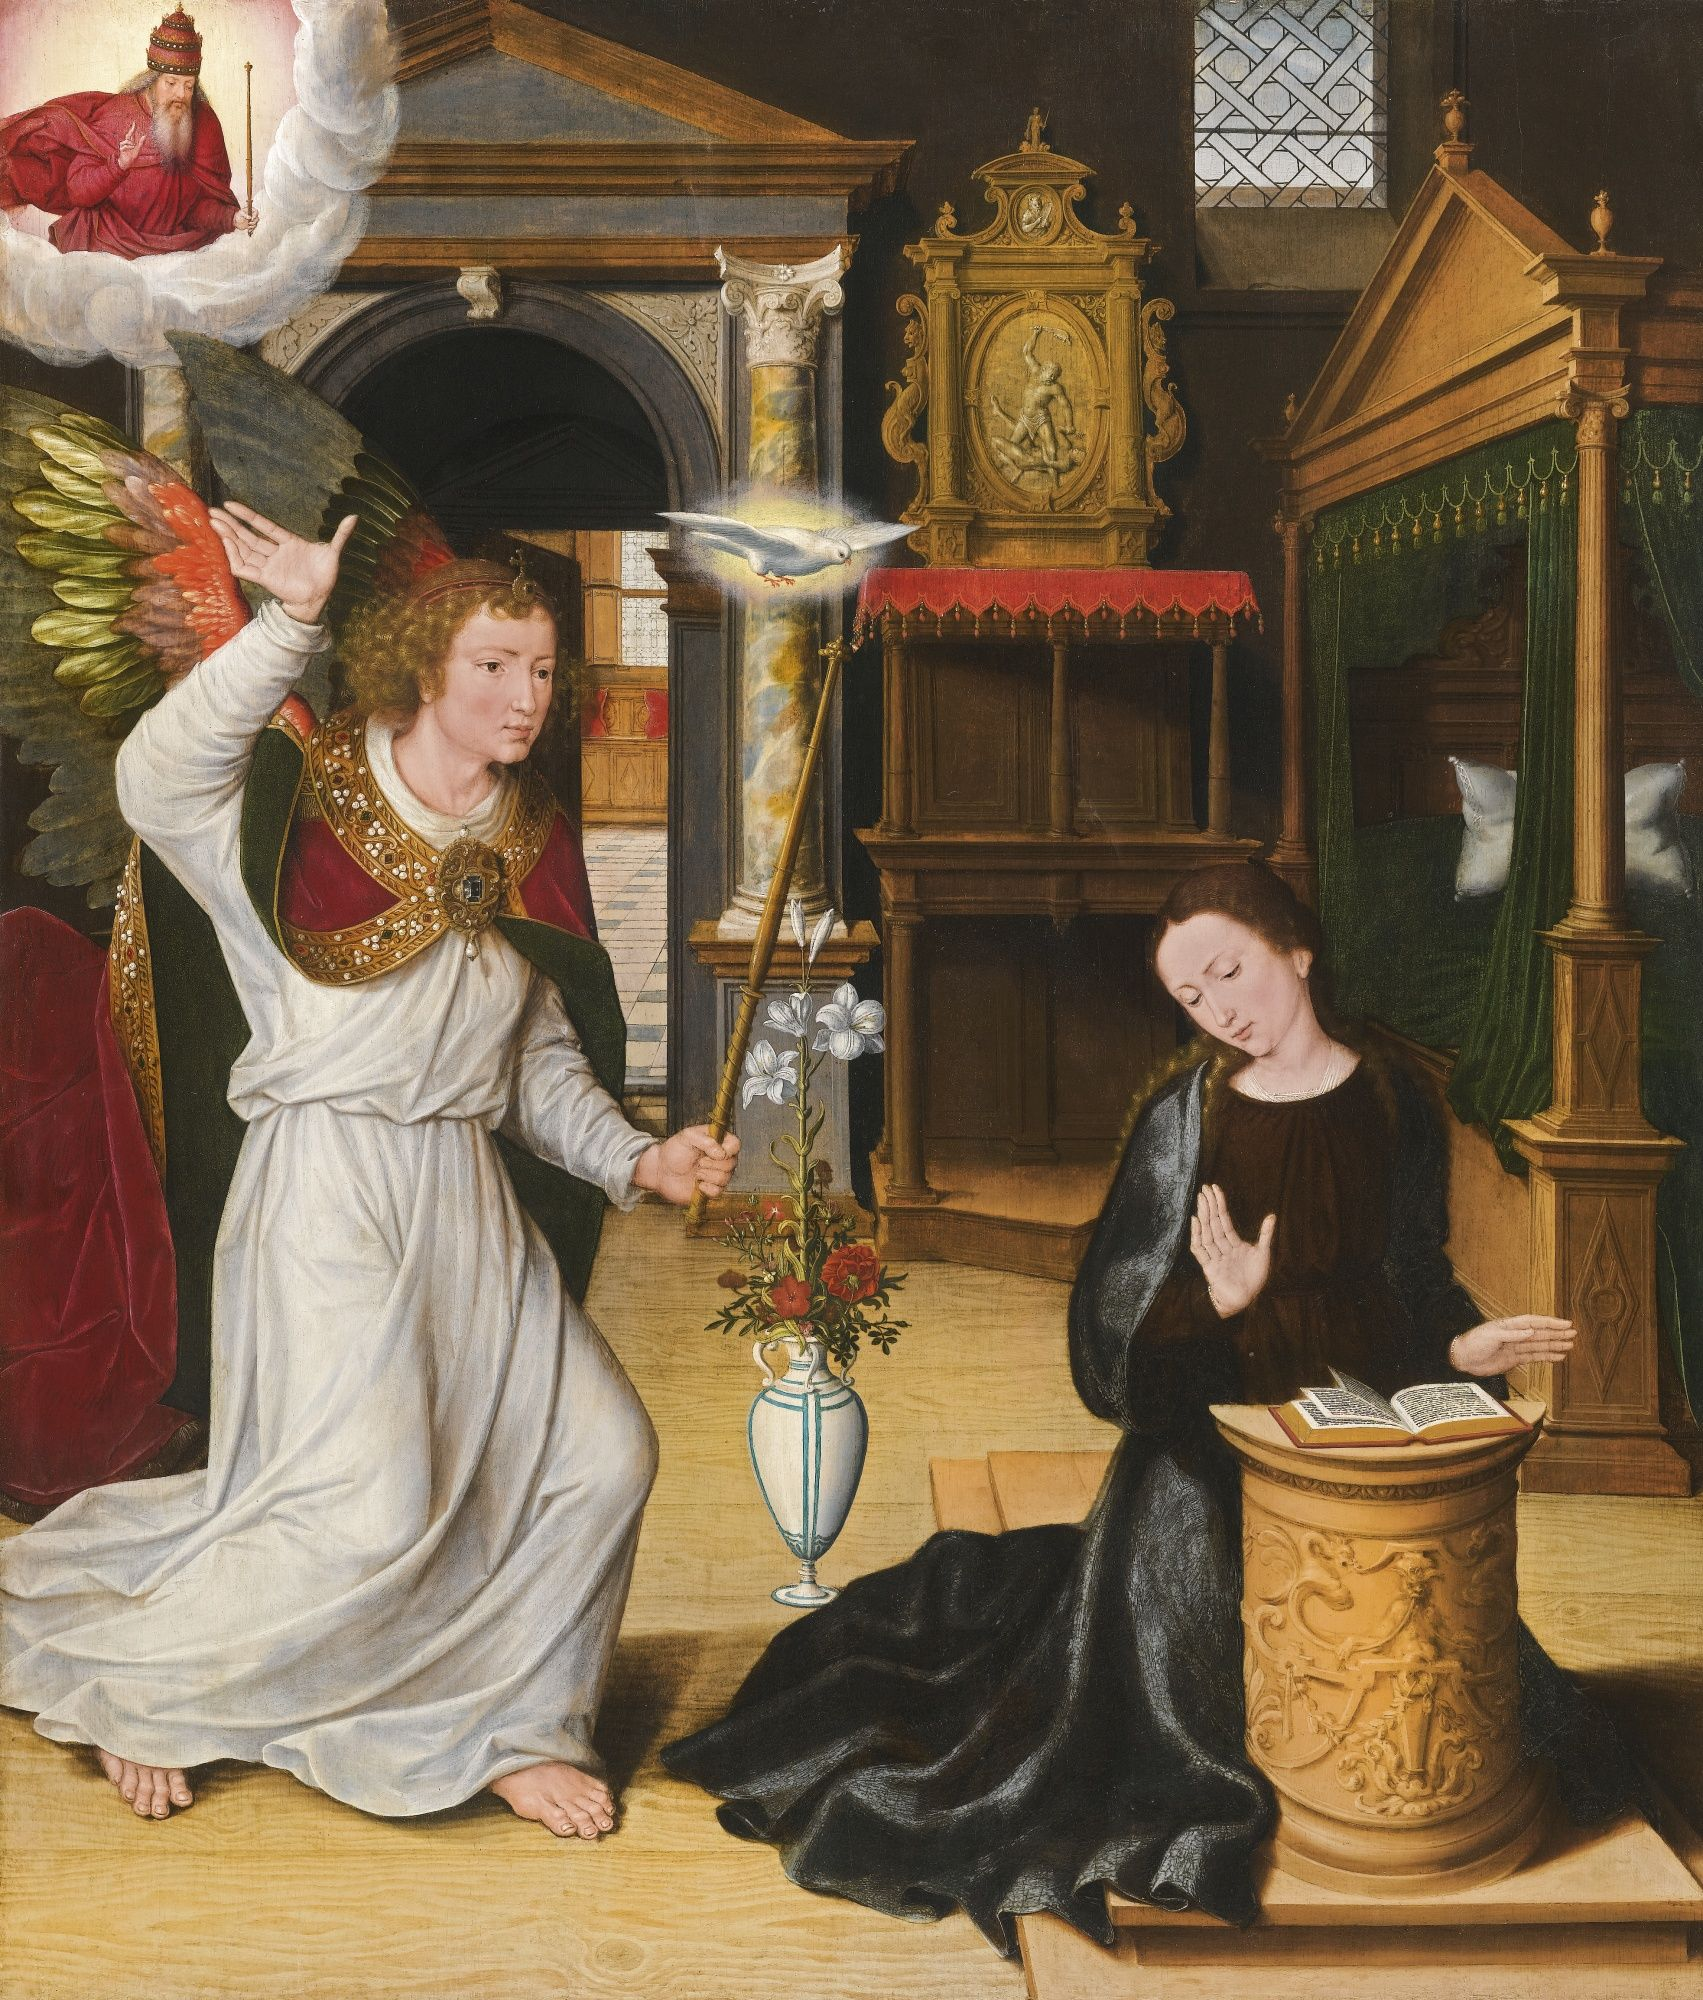 School of Bruges, 16th, THE ANNUNCIATION, oil on oak panel, 90.5 by 77 cm - closely related to the painting of the same subject by Pieter Pourbus of 1552, generally considered the most important early masterpiece by the artist (Stedelijke Musea, Gouda). When the Annunciation was exhibited in the show From Memling to Pourbus: Bruges and the Renaissance (Memlingmuseum – Out Sint Janshospitaal, Bruges, 15 August – 6 December 1998)